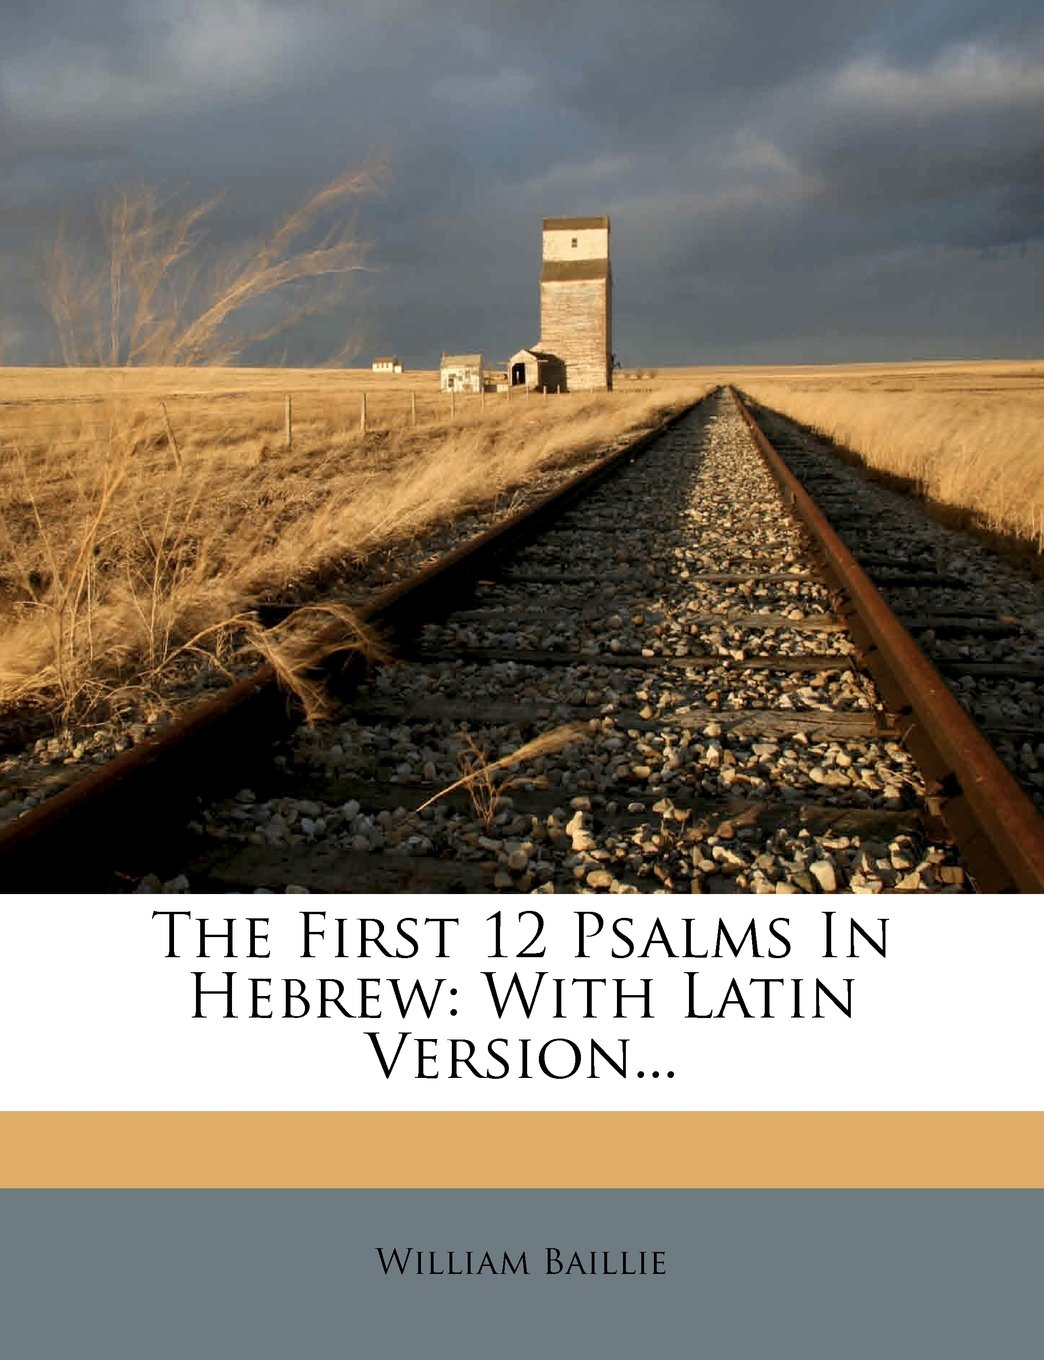 Download The First 12 Psalms In Hebrew: With Latin Version... PDF